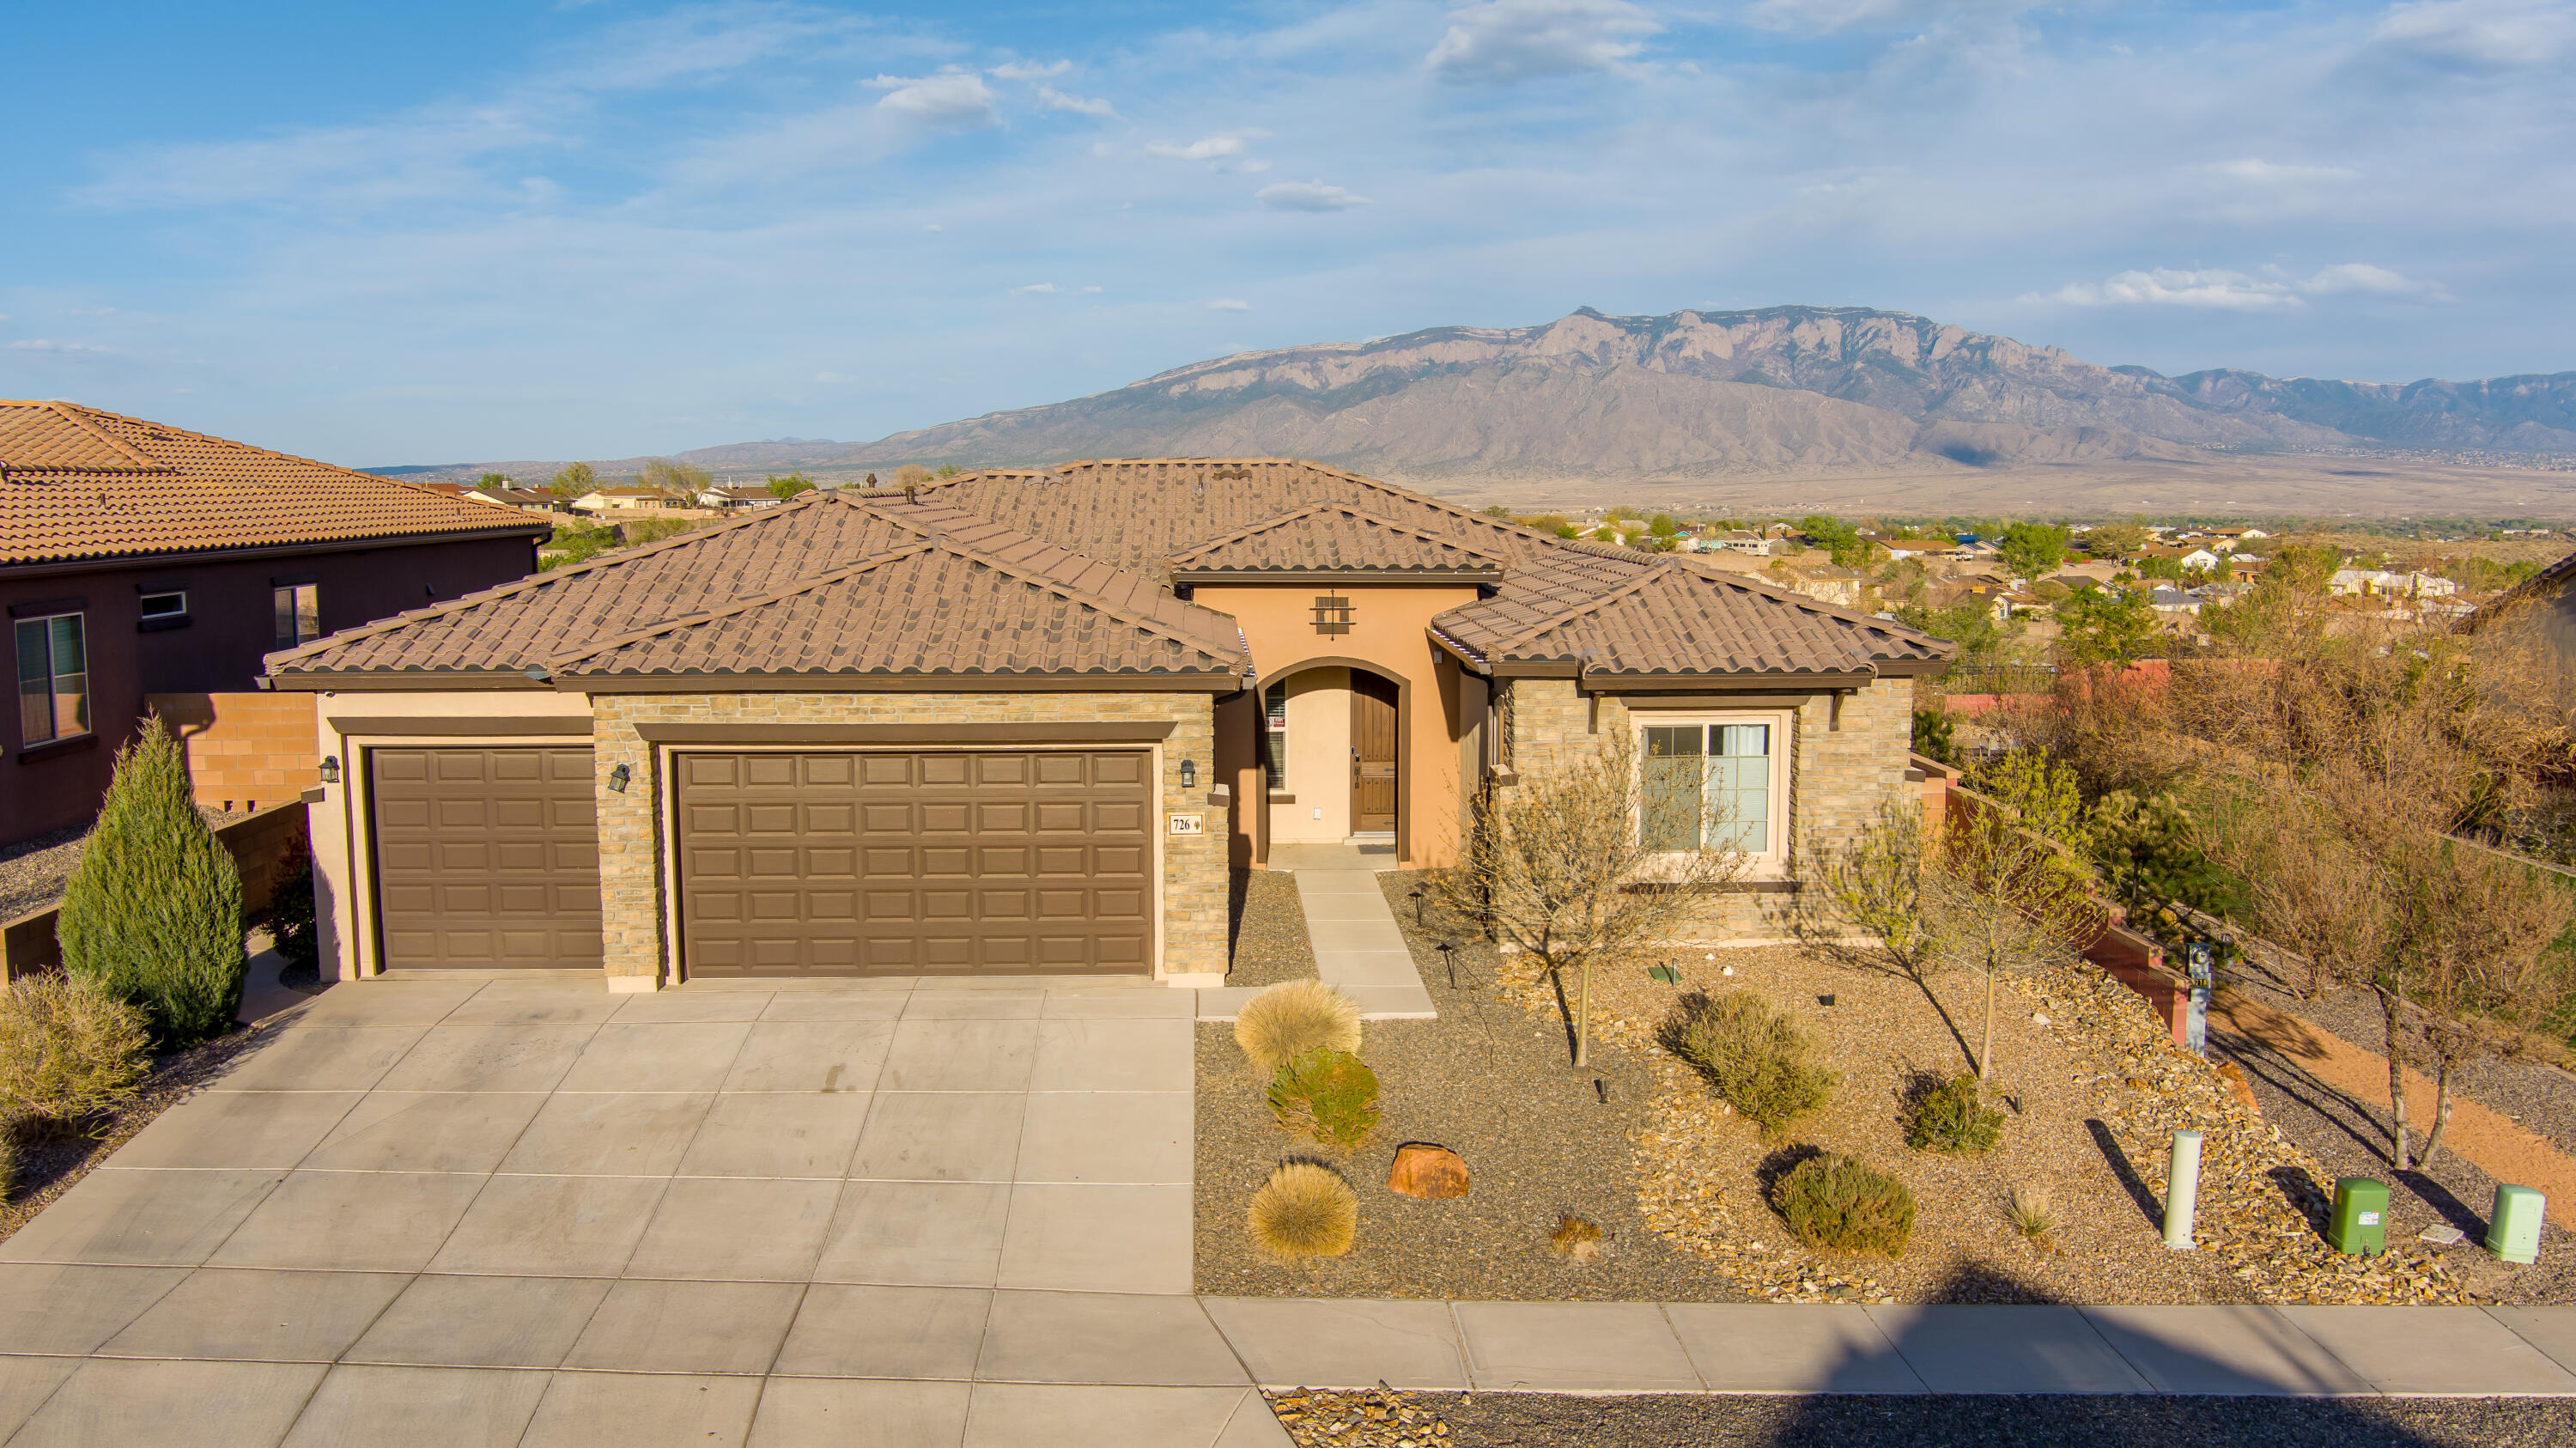 Stunning home in the beautiful community of Loma Colorado/Tres Colinas!  This 3/4 bedroom home has an abundance of natural light and breathtaking unobstructed views of the Sandia's and Albuquerque.  This open floor plan offers a beautifully upgraded kitchen with tons of cabinets, large island w/ bar seating, upgraded fridge and SS appliances. The master suite captures the gorgeous views of the Sandia's, a large walk-in closet that has been customized, and a spa-like bathroom with a large walk-in shower. There is plenty of storage space in this home and the 3 car garage makes storing your extra toys easy!  The backyard boosts an outdoor built in grill and counter top as well as a beautiful covered patio with fireplace!   Come and see this beauty before it is gone!